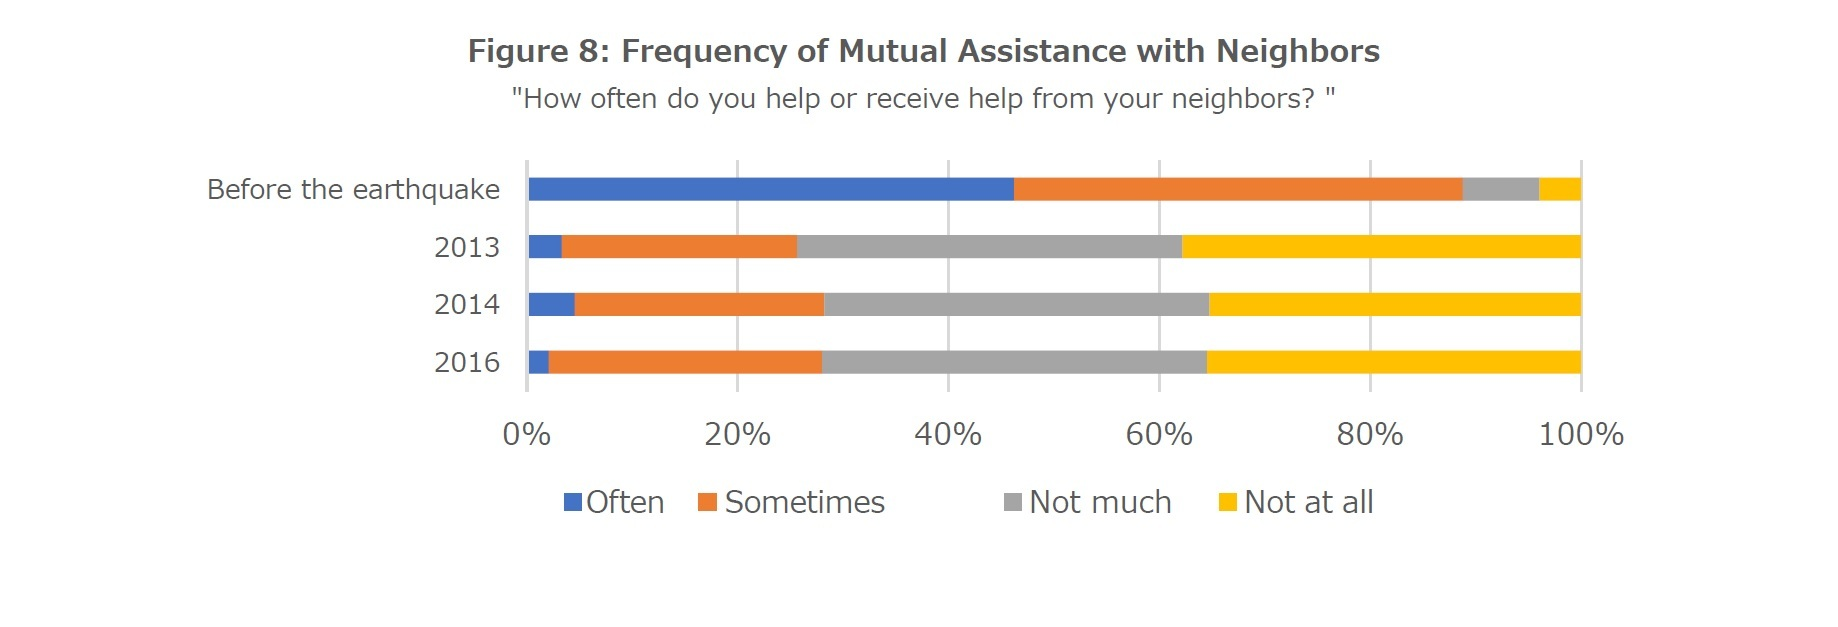 Figure 8: Frequency of Mutual Assistance with Neighbors